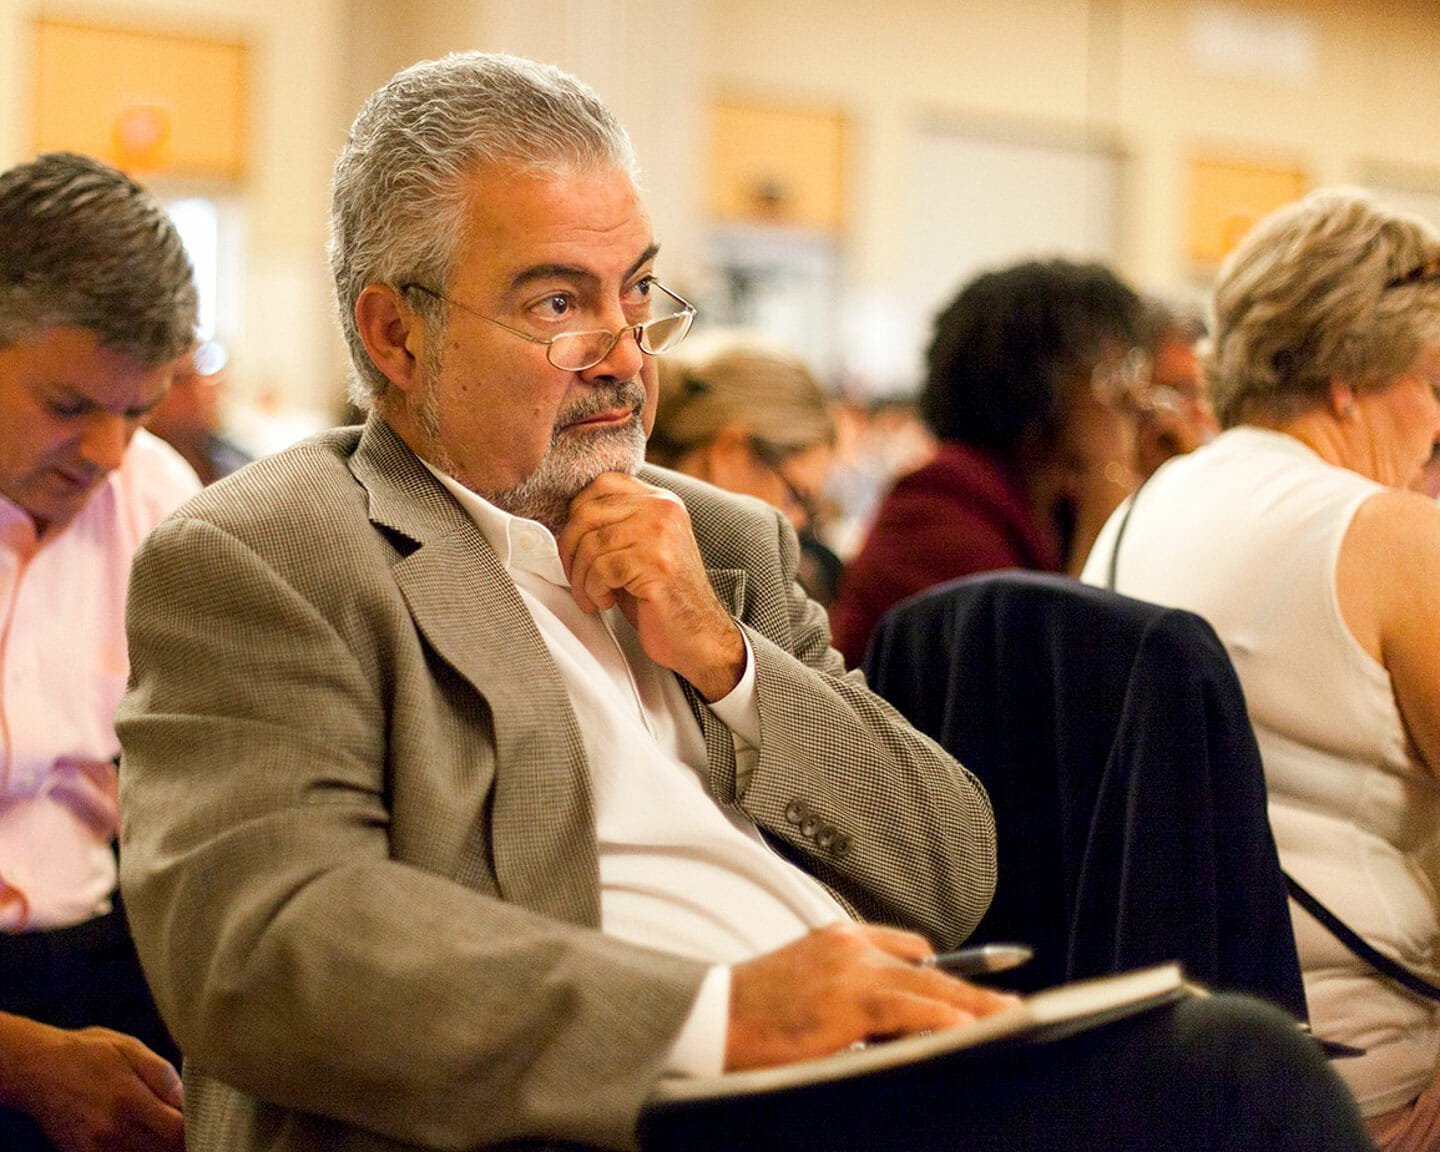 Man at conference watches thoughtfully